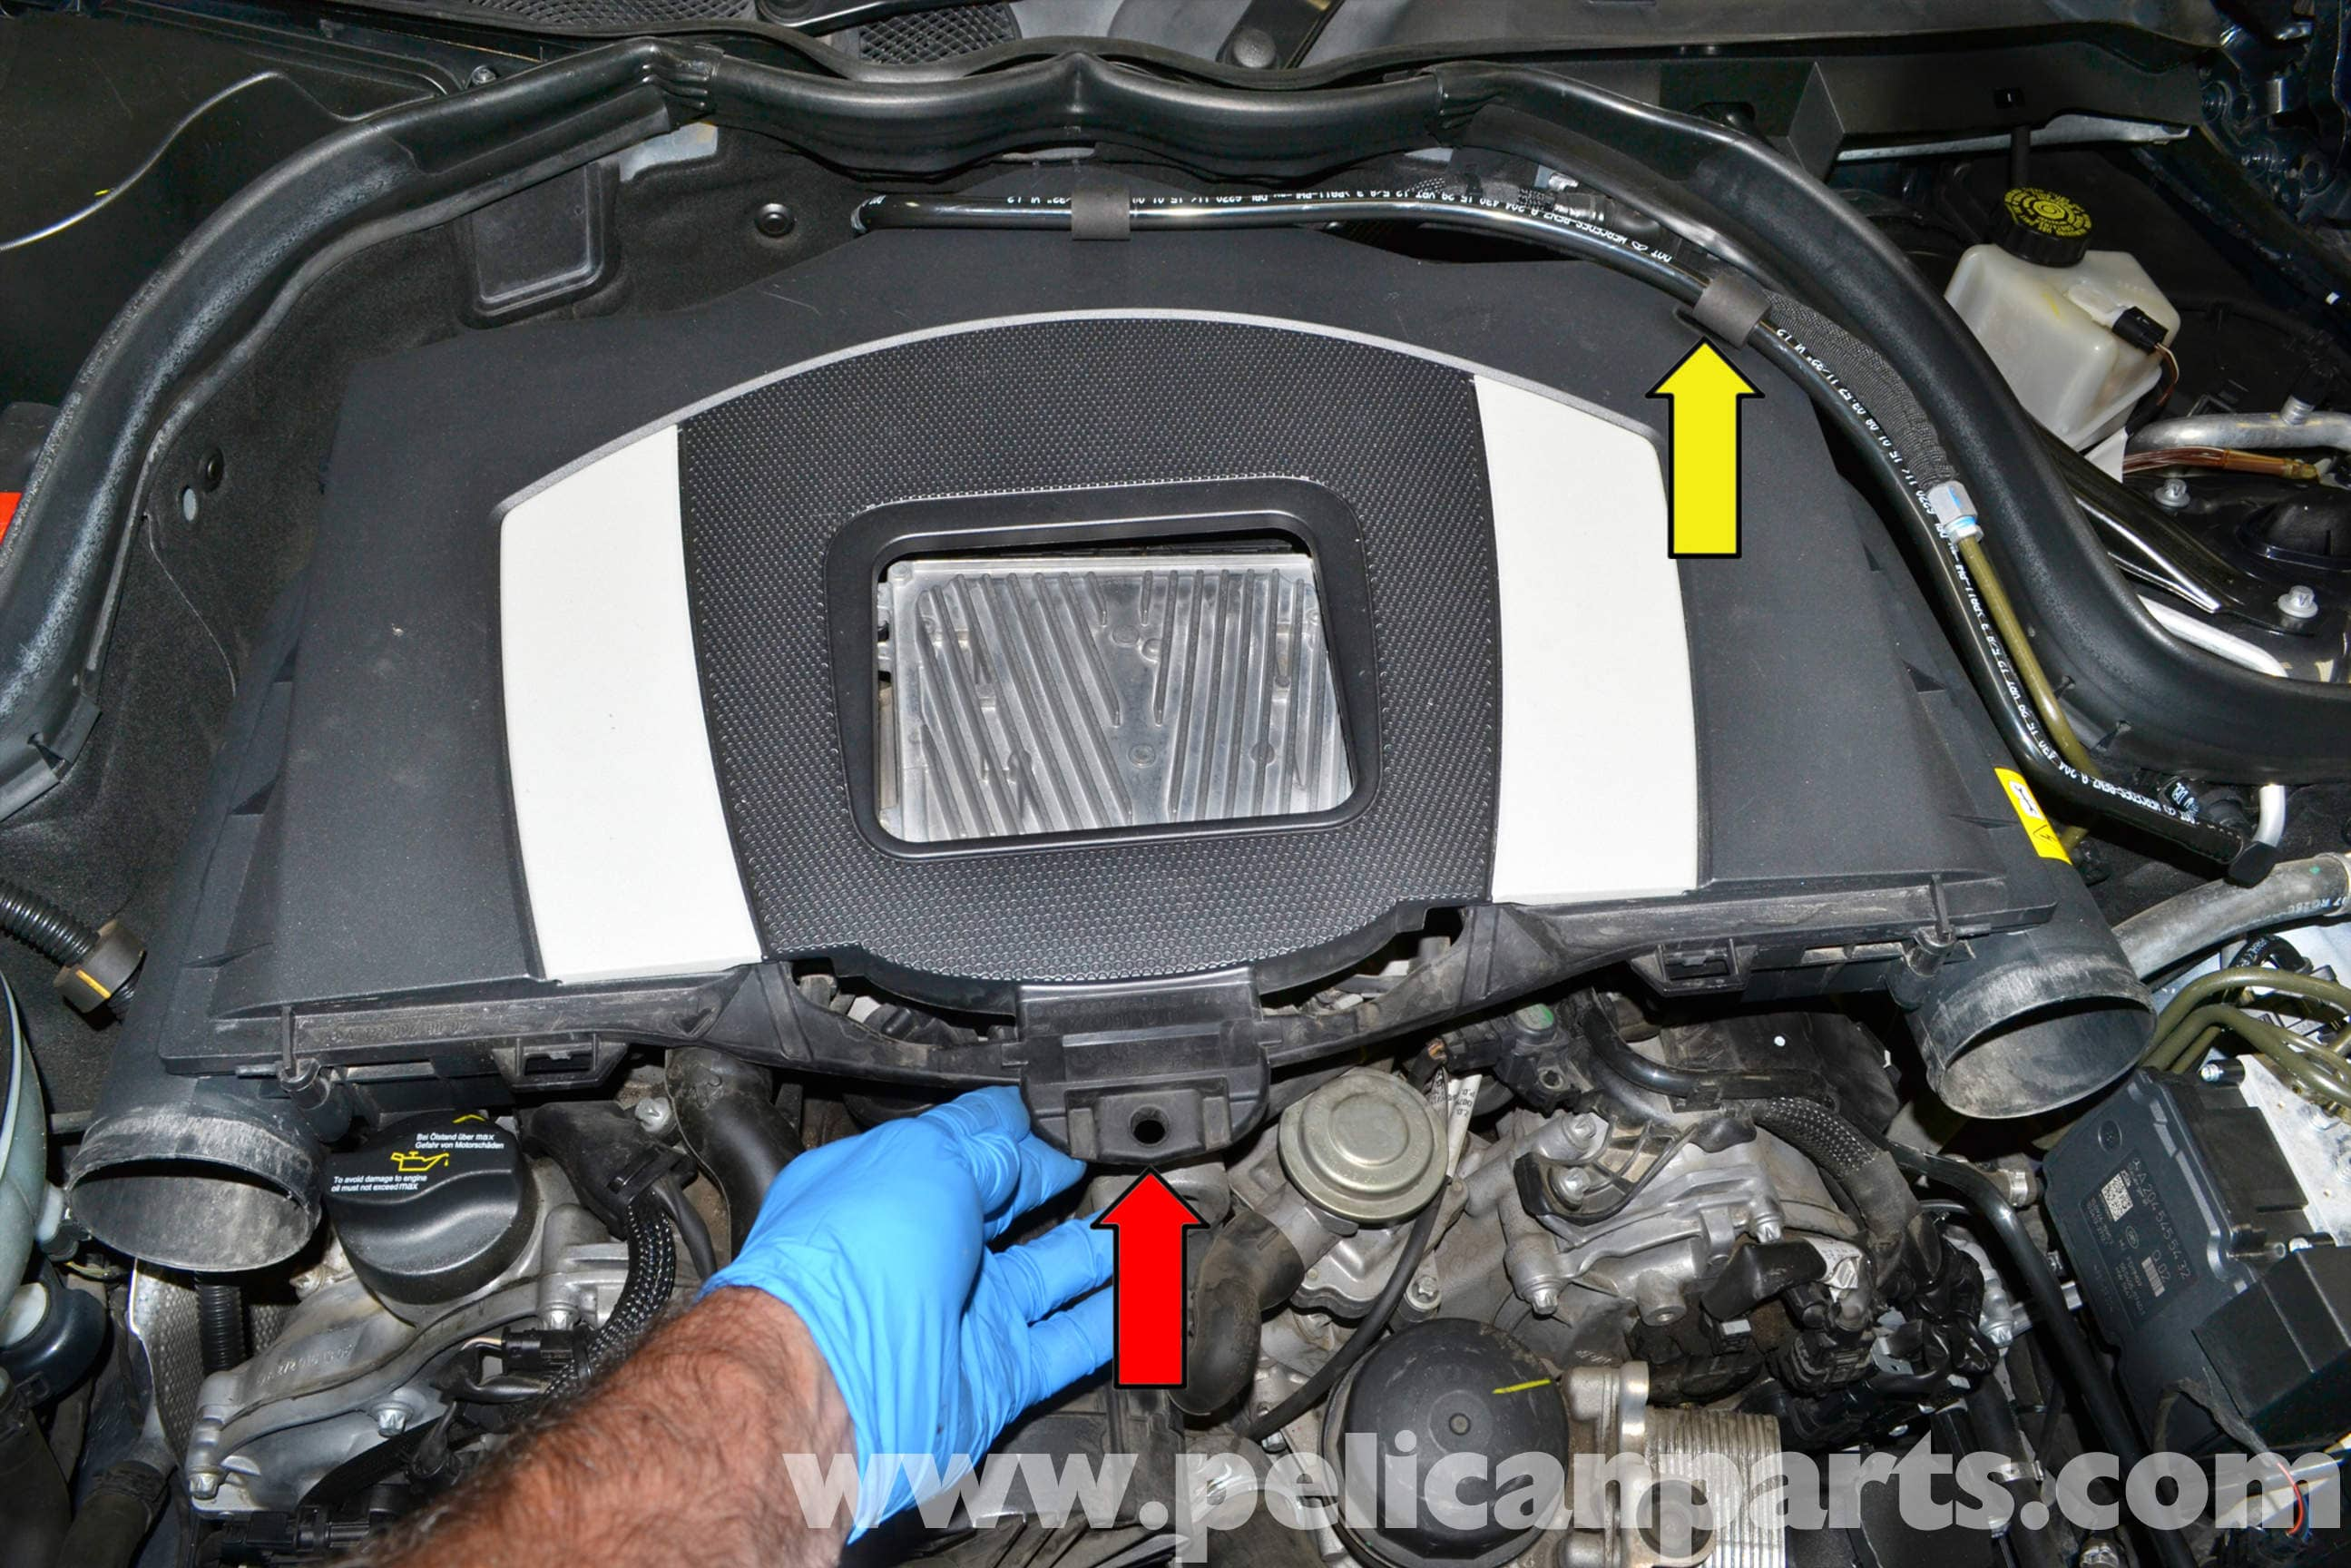 Mercedes benz w204 engine cover removal 2008 2014 c250 for Mercedes benz c300 engine